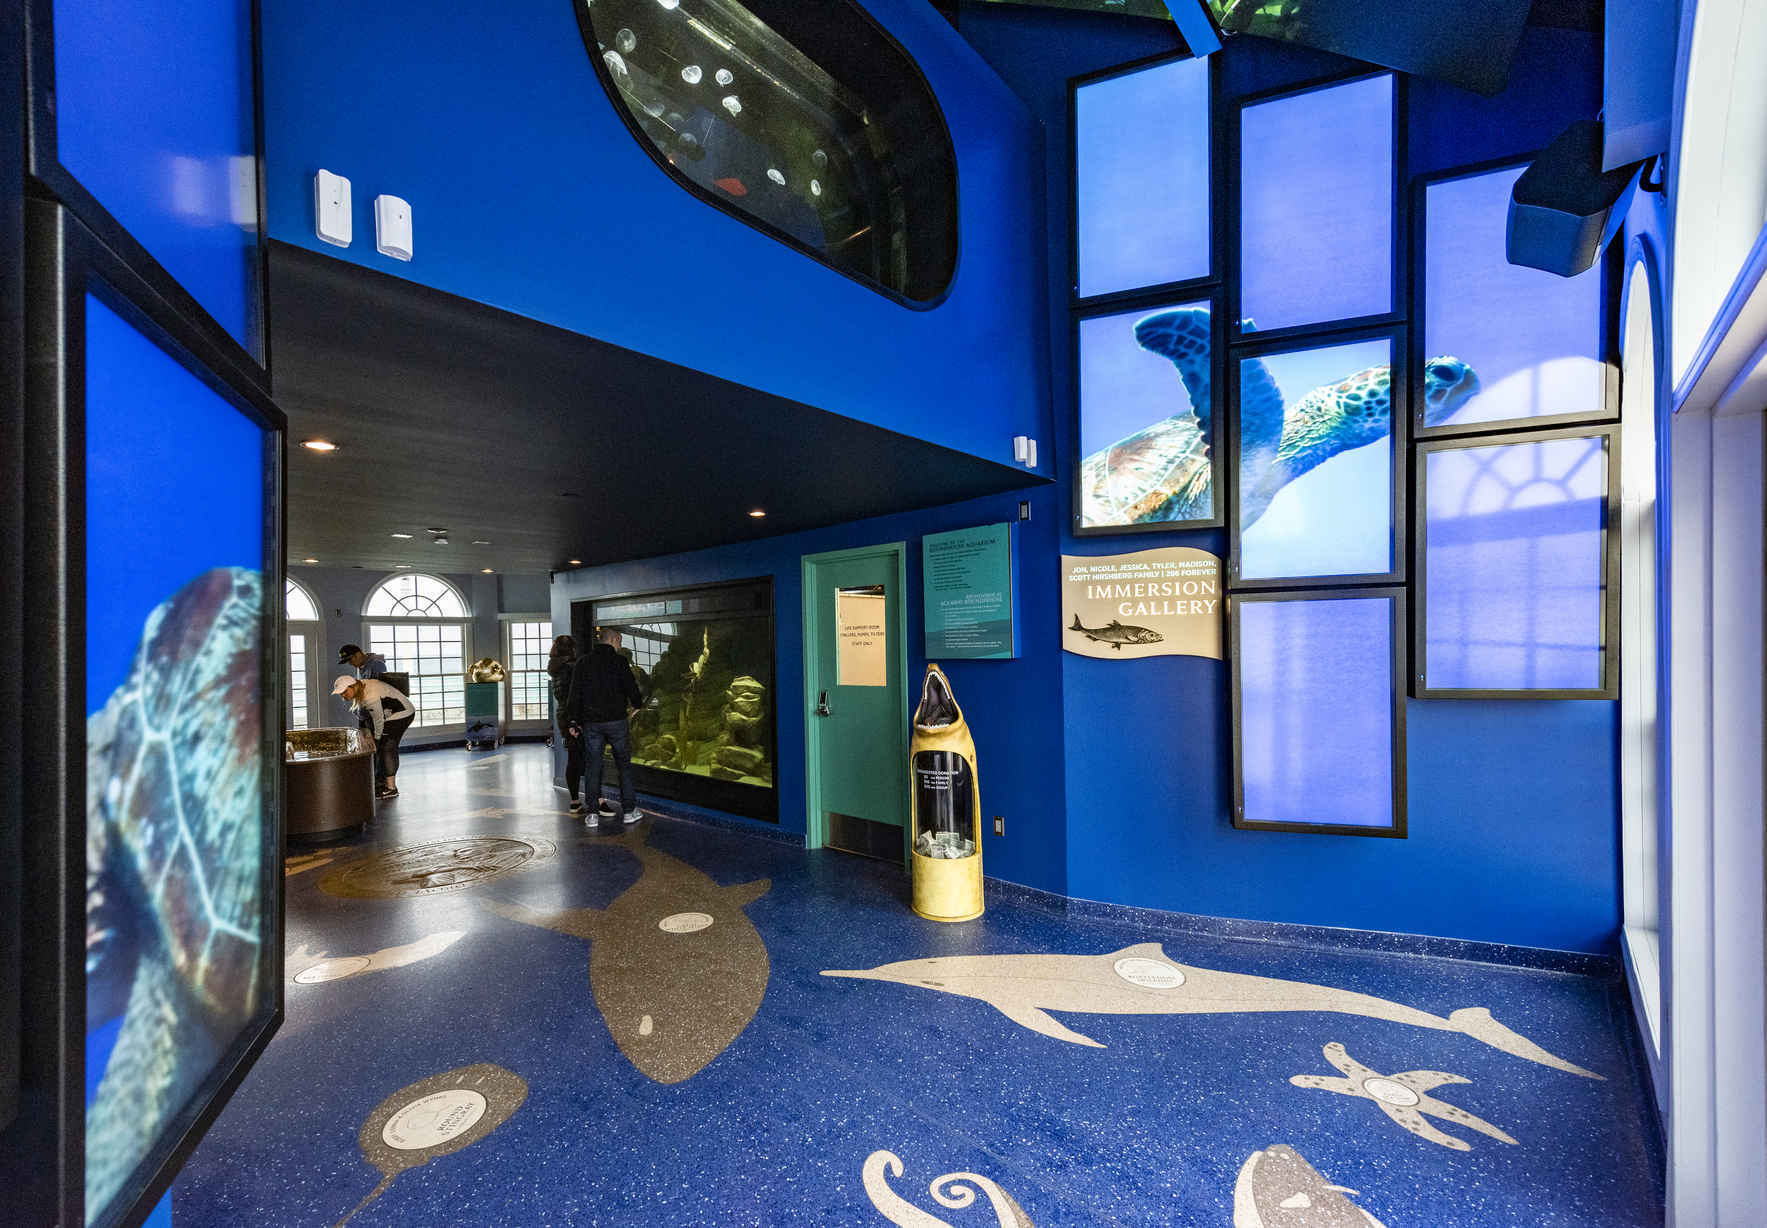 July 3 - Reserve your free entry to the Roundhouse Aquarium image